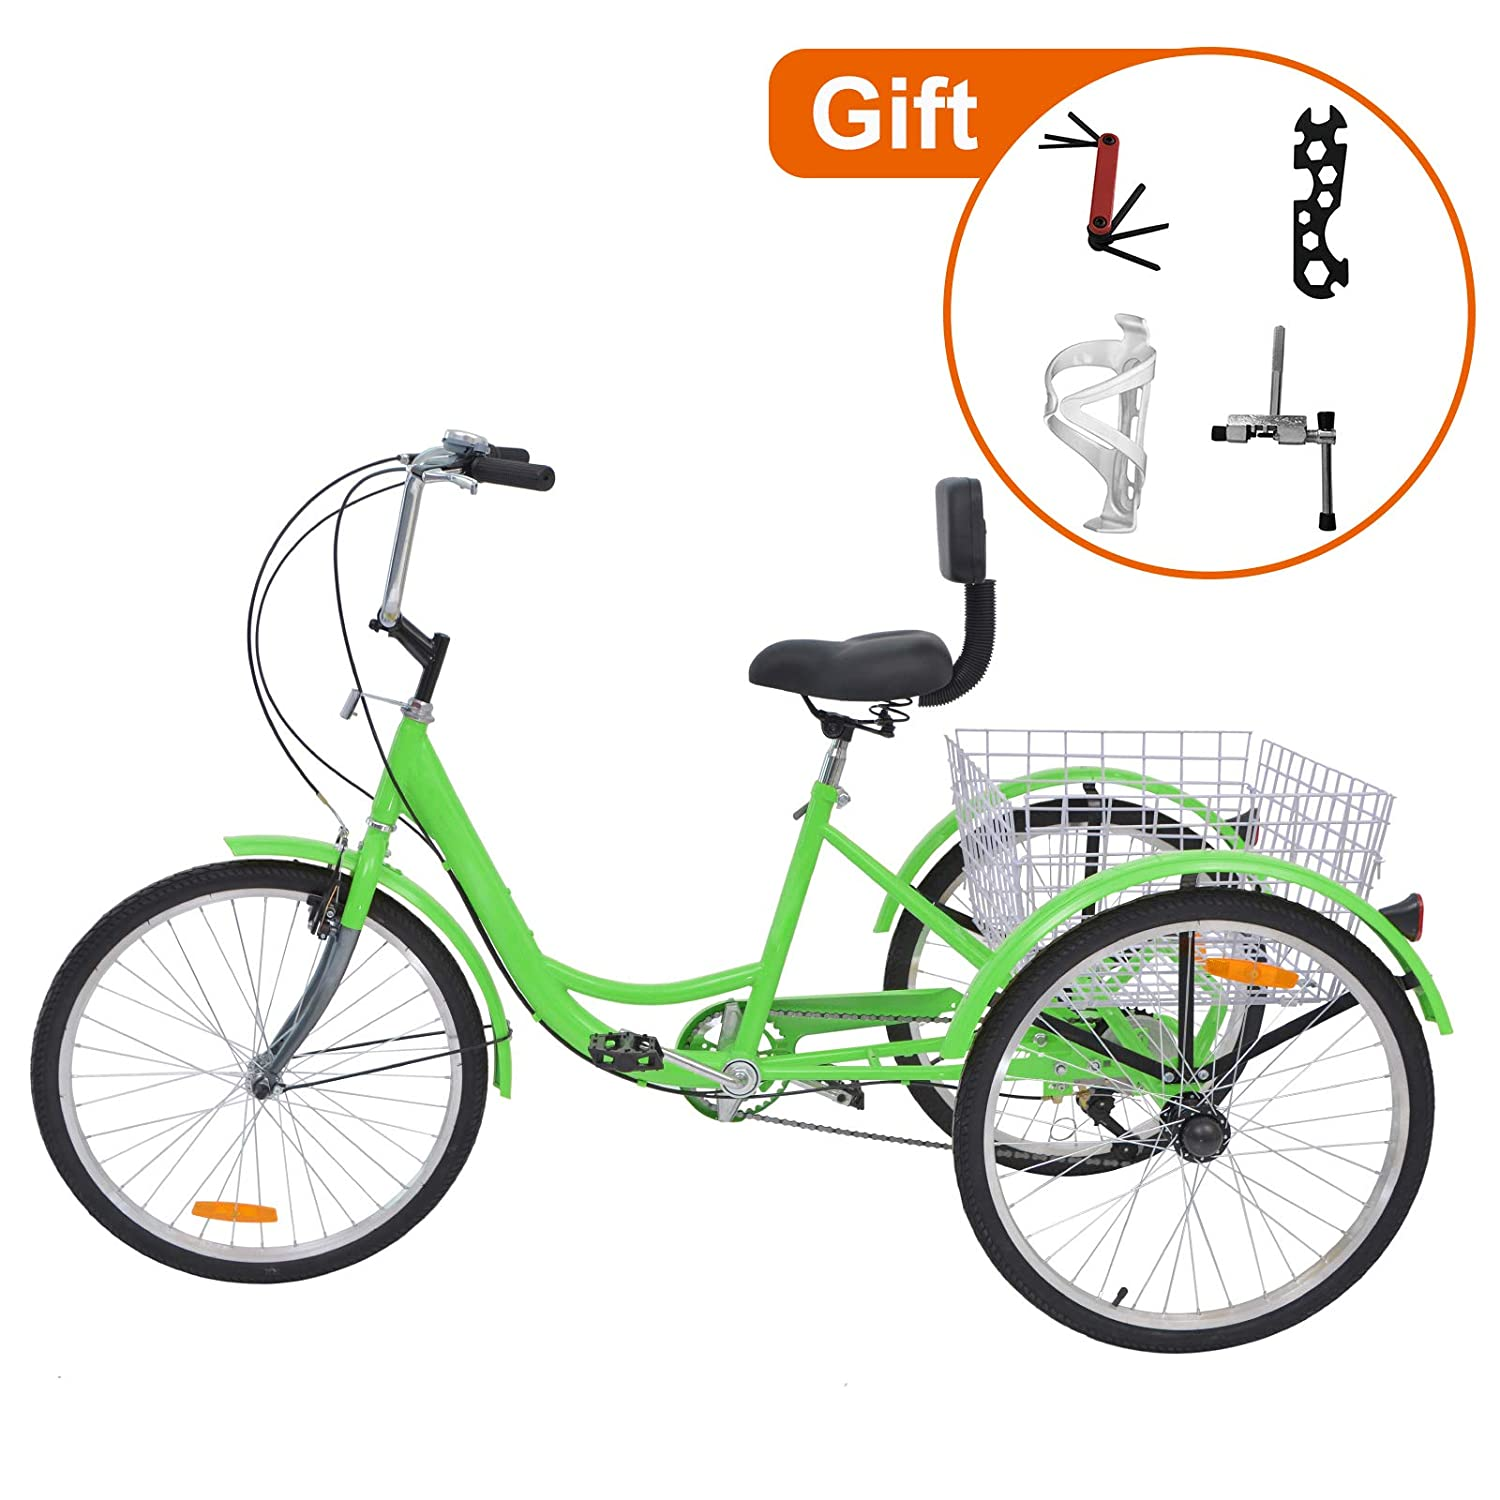 24-Inch Single and 7 Speed Three-Wheeled Cruise Bike with Large Size Basket for Recreation Barbella Adult Tricycle Exercise Mens Womens Bike Shopping